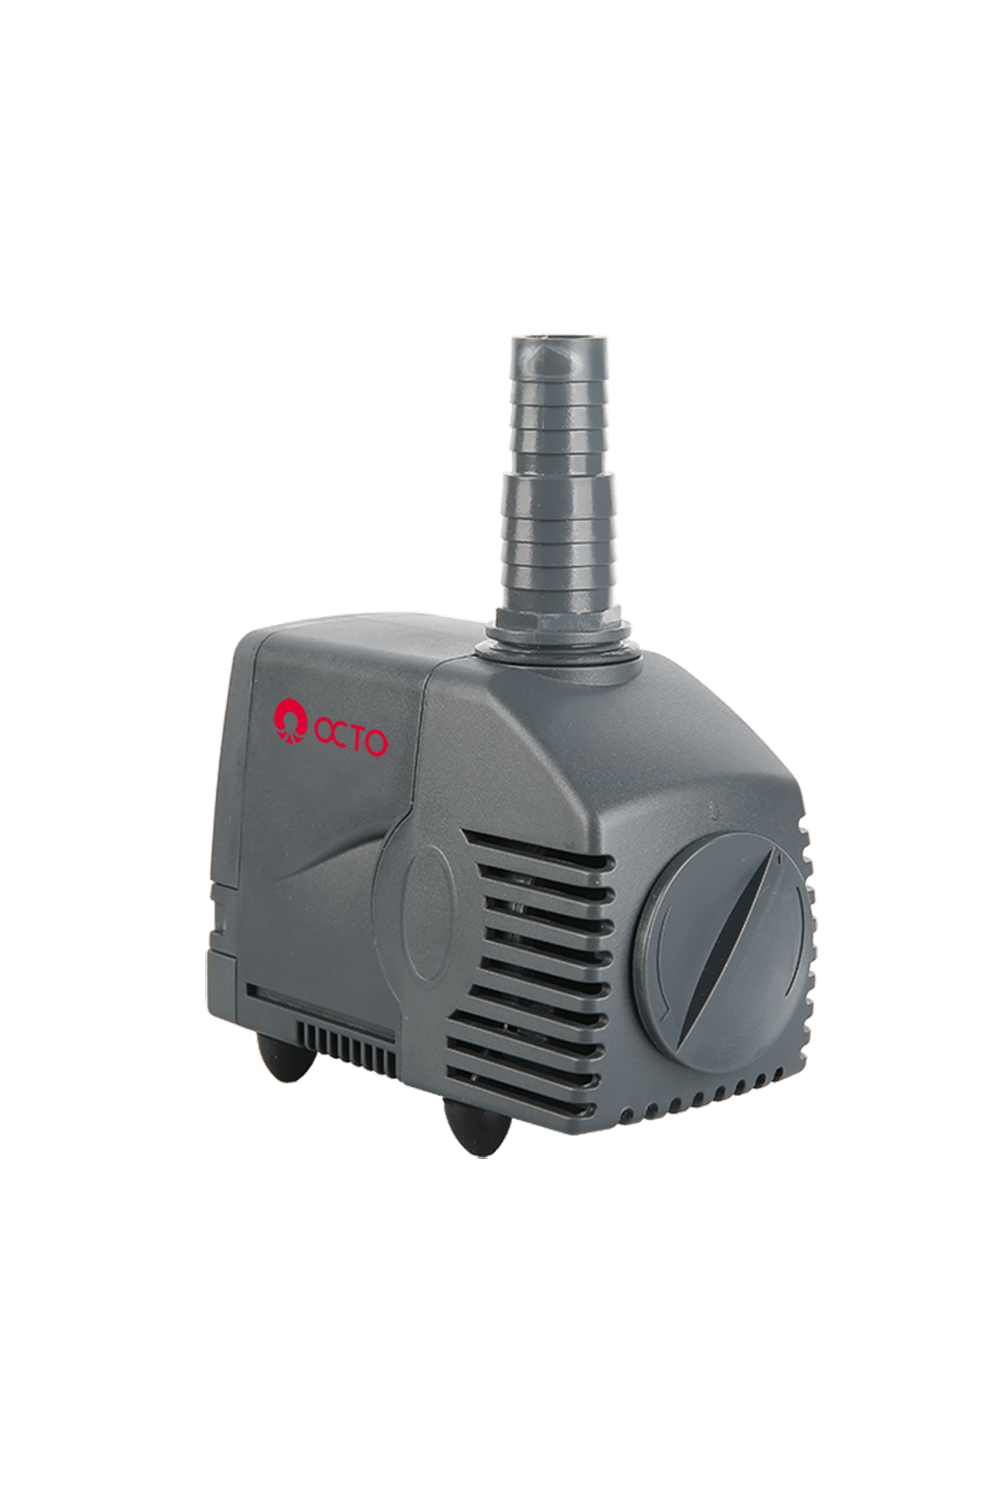 OCTO AQ-800 Water Pump